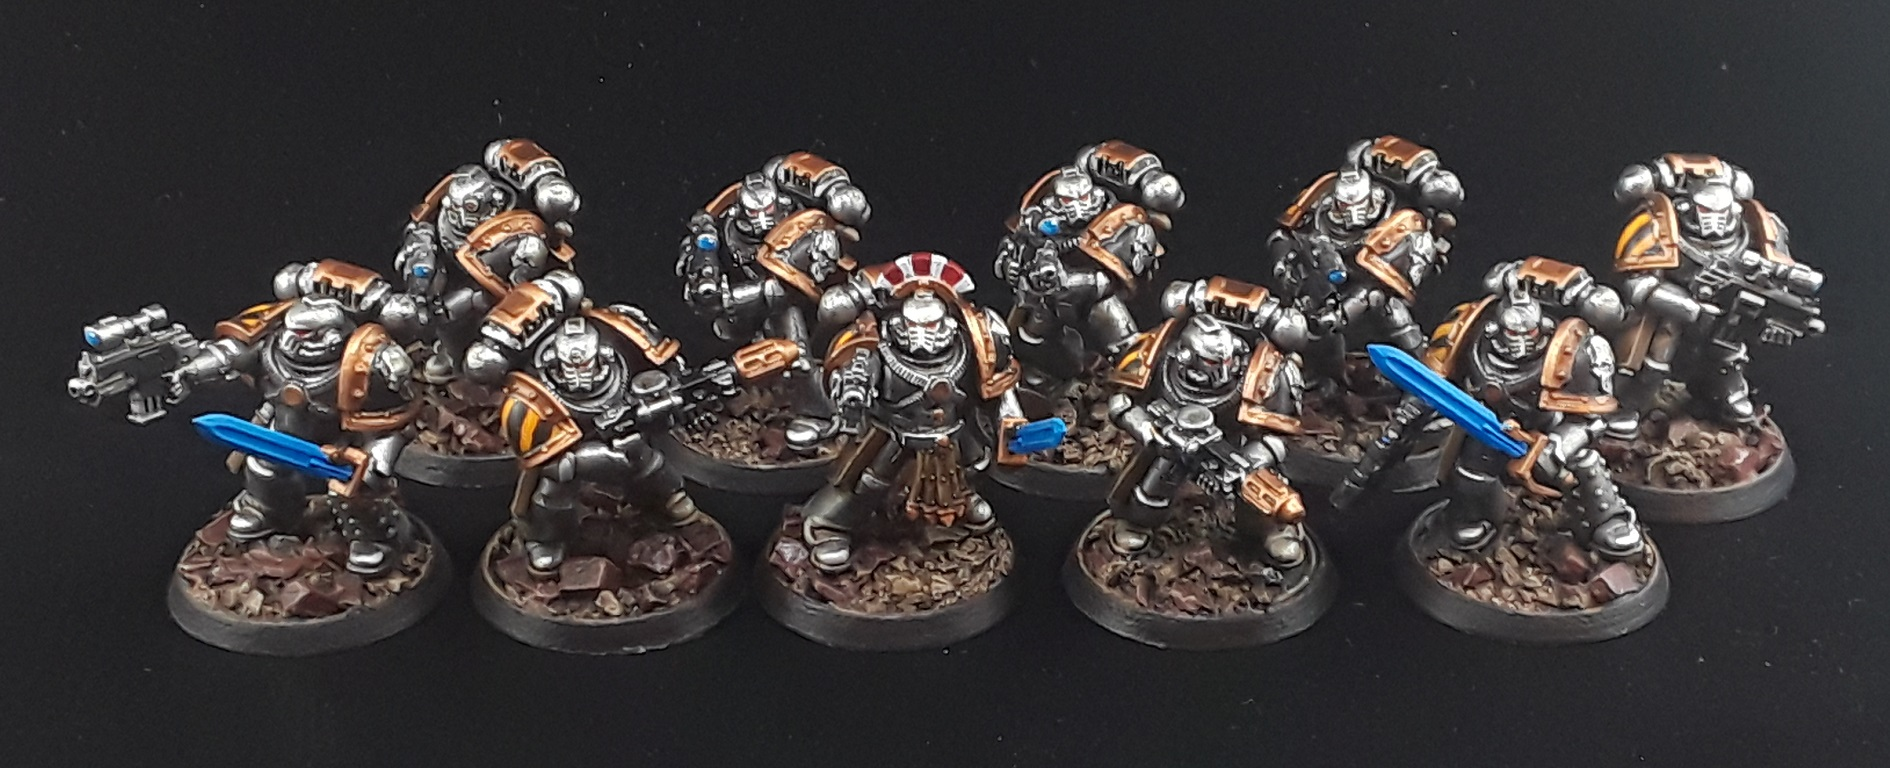 Cold Moon Images >> Heresy-Era Iron Warriors